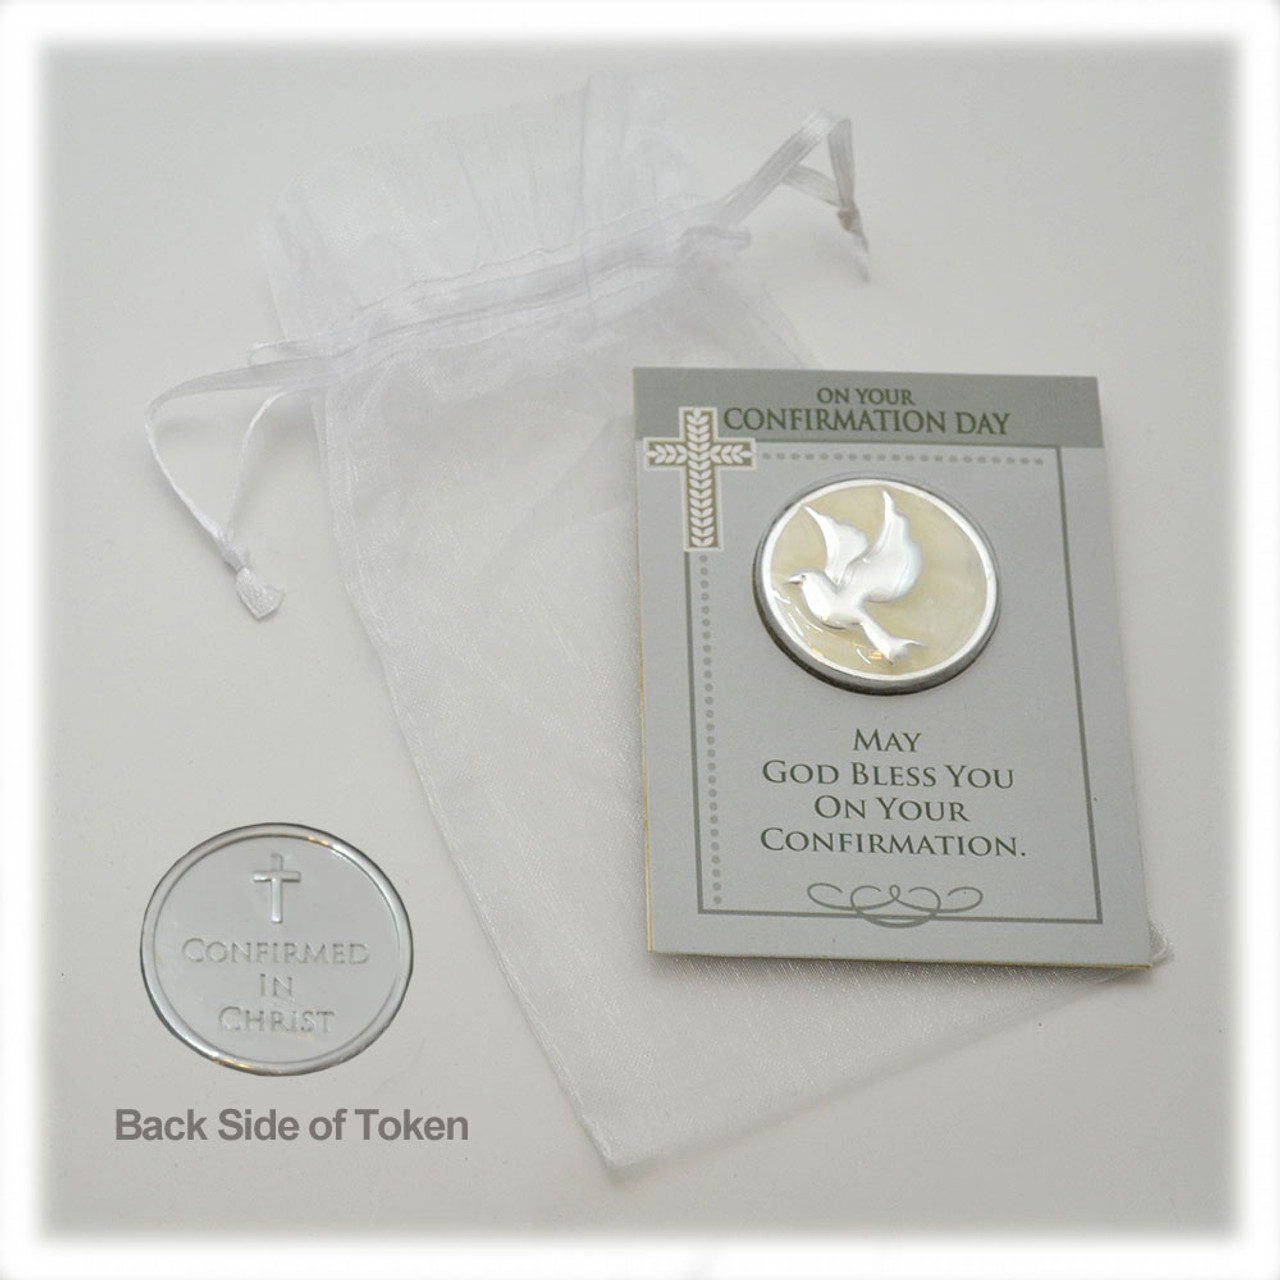 Confirmation Pocket Token and Gift Bag